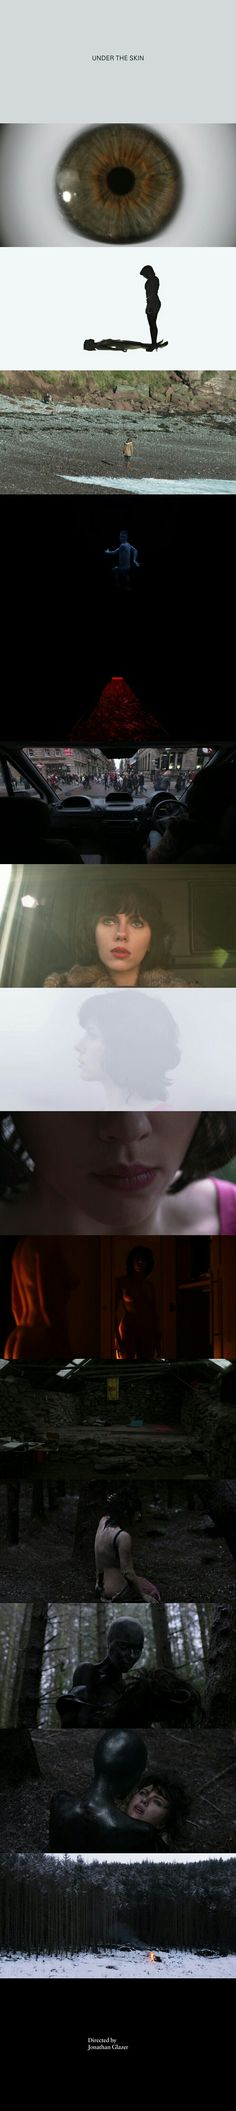 Under The Skin (2013) Directed by Jonathan Glazer.